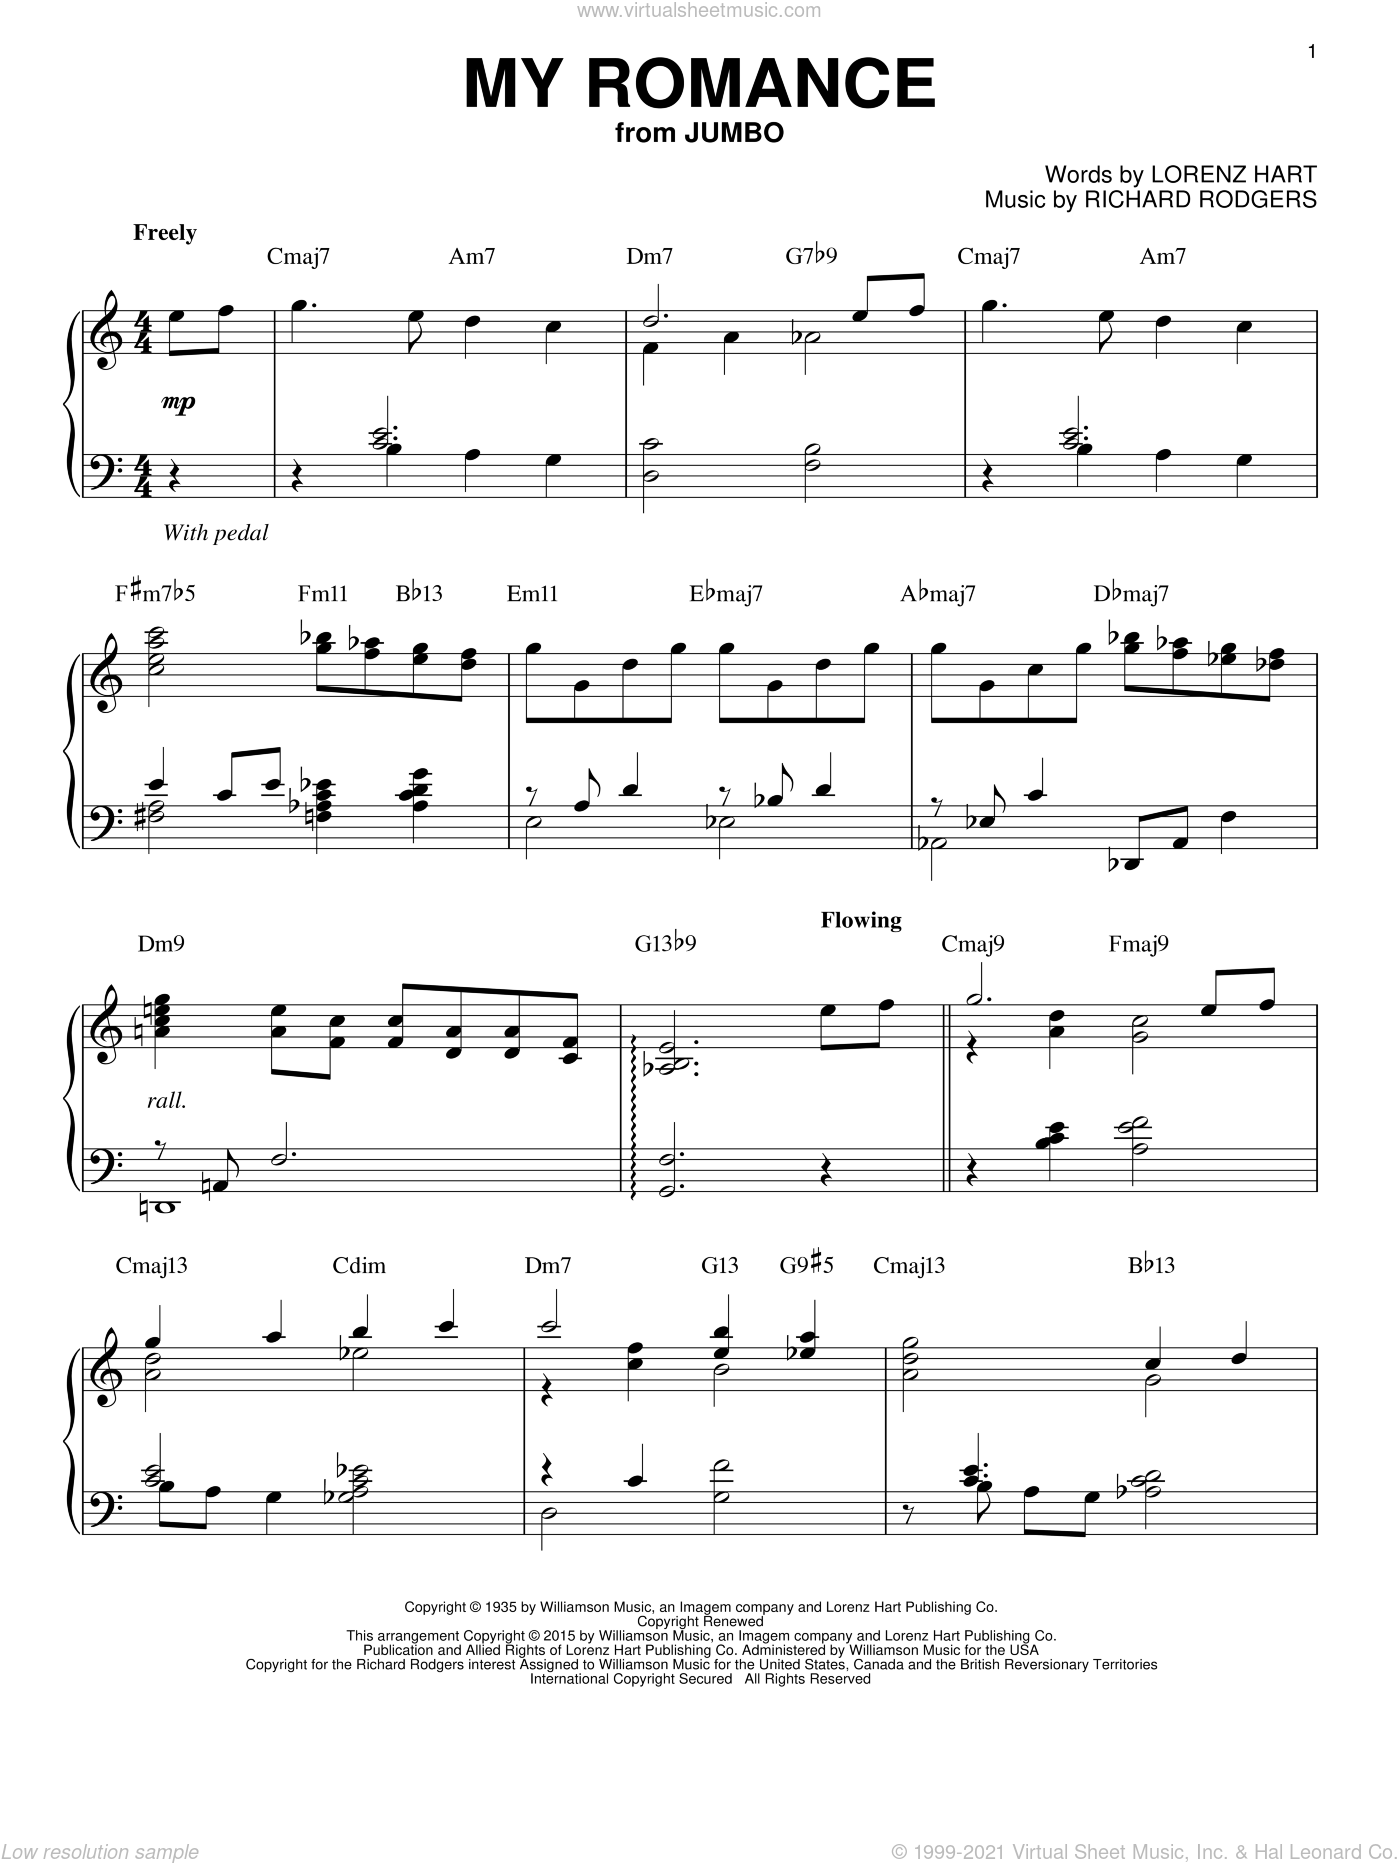 My Romance sheet music for piano solo by Rodgers & Hart, Lorenz Hart and Richard Rodgers, intermediate skill level